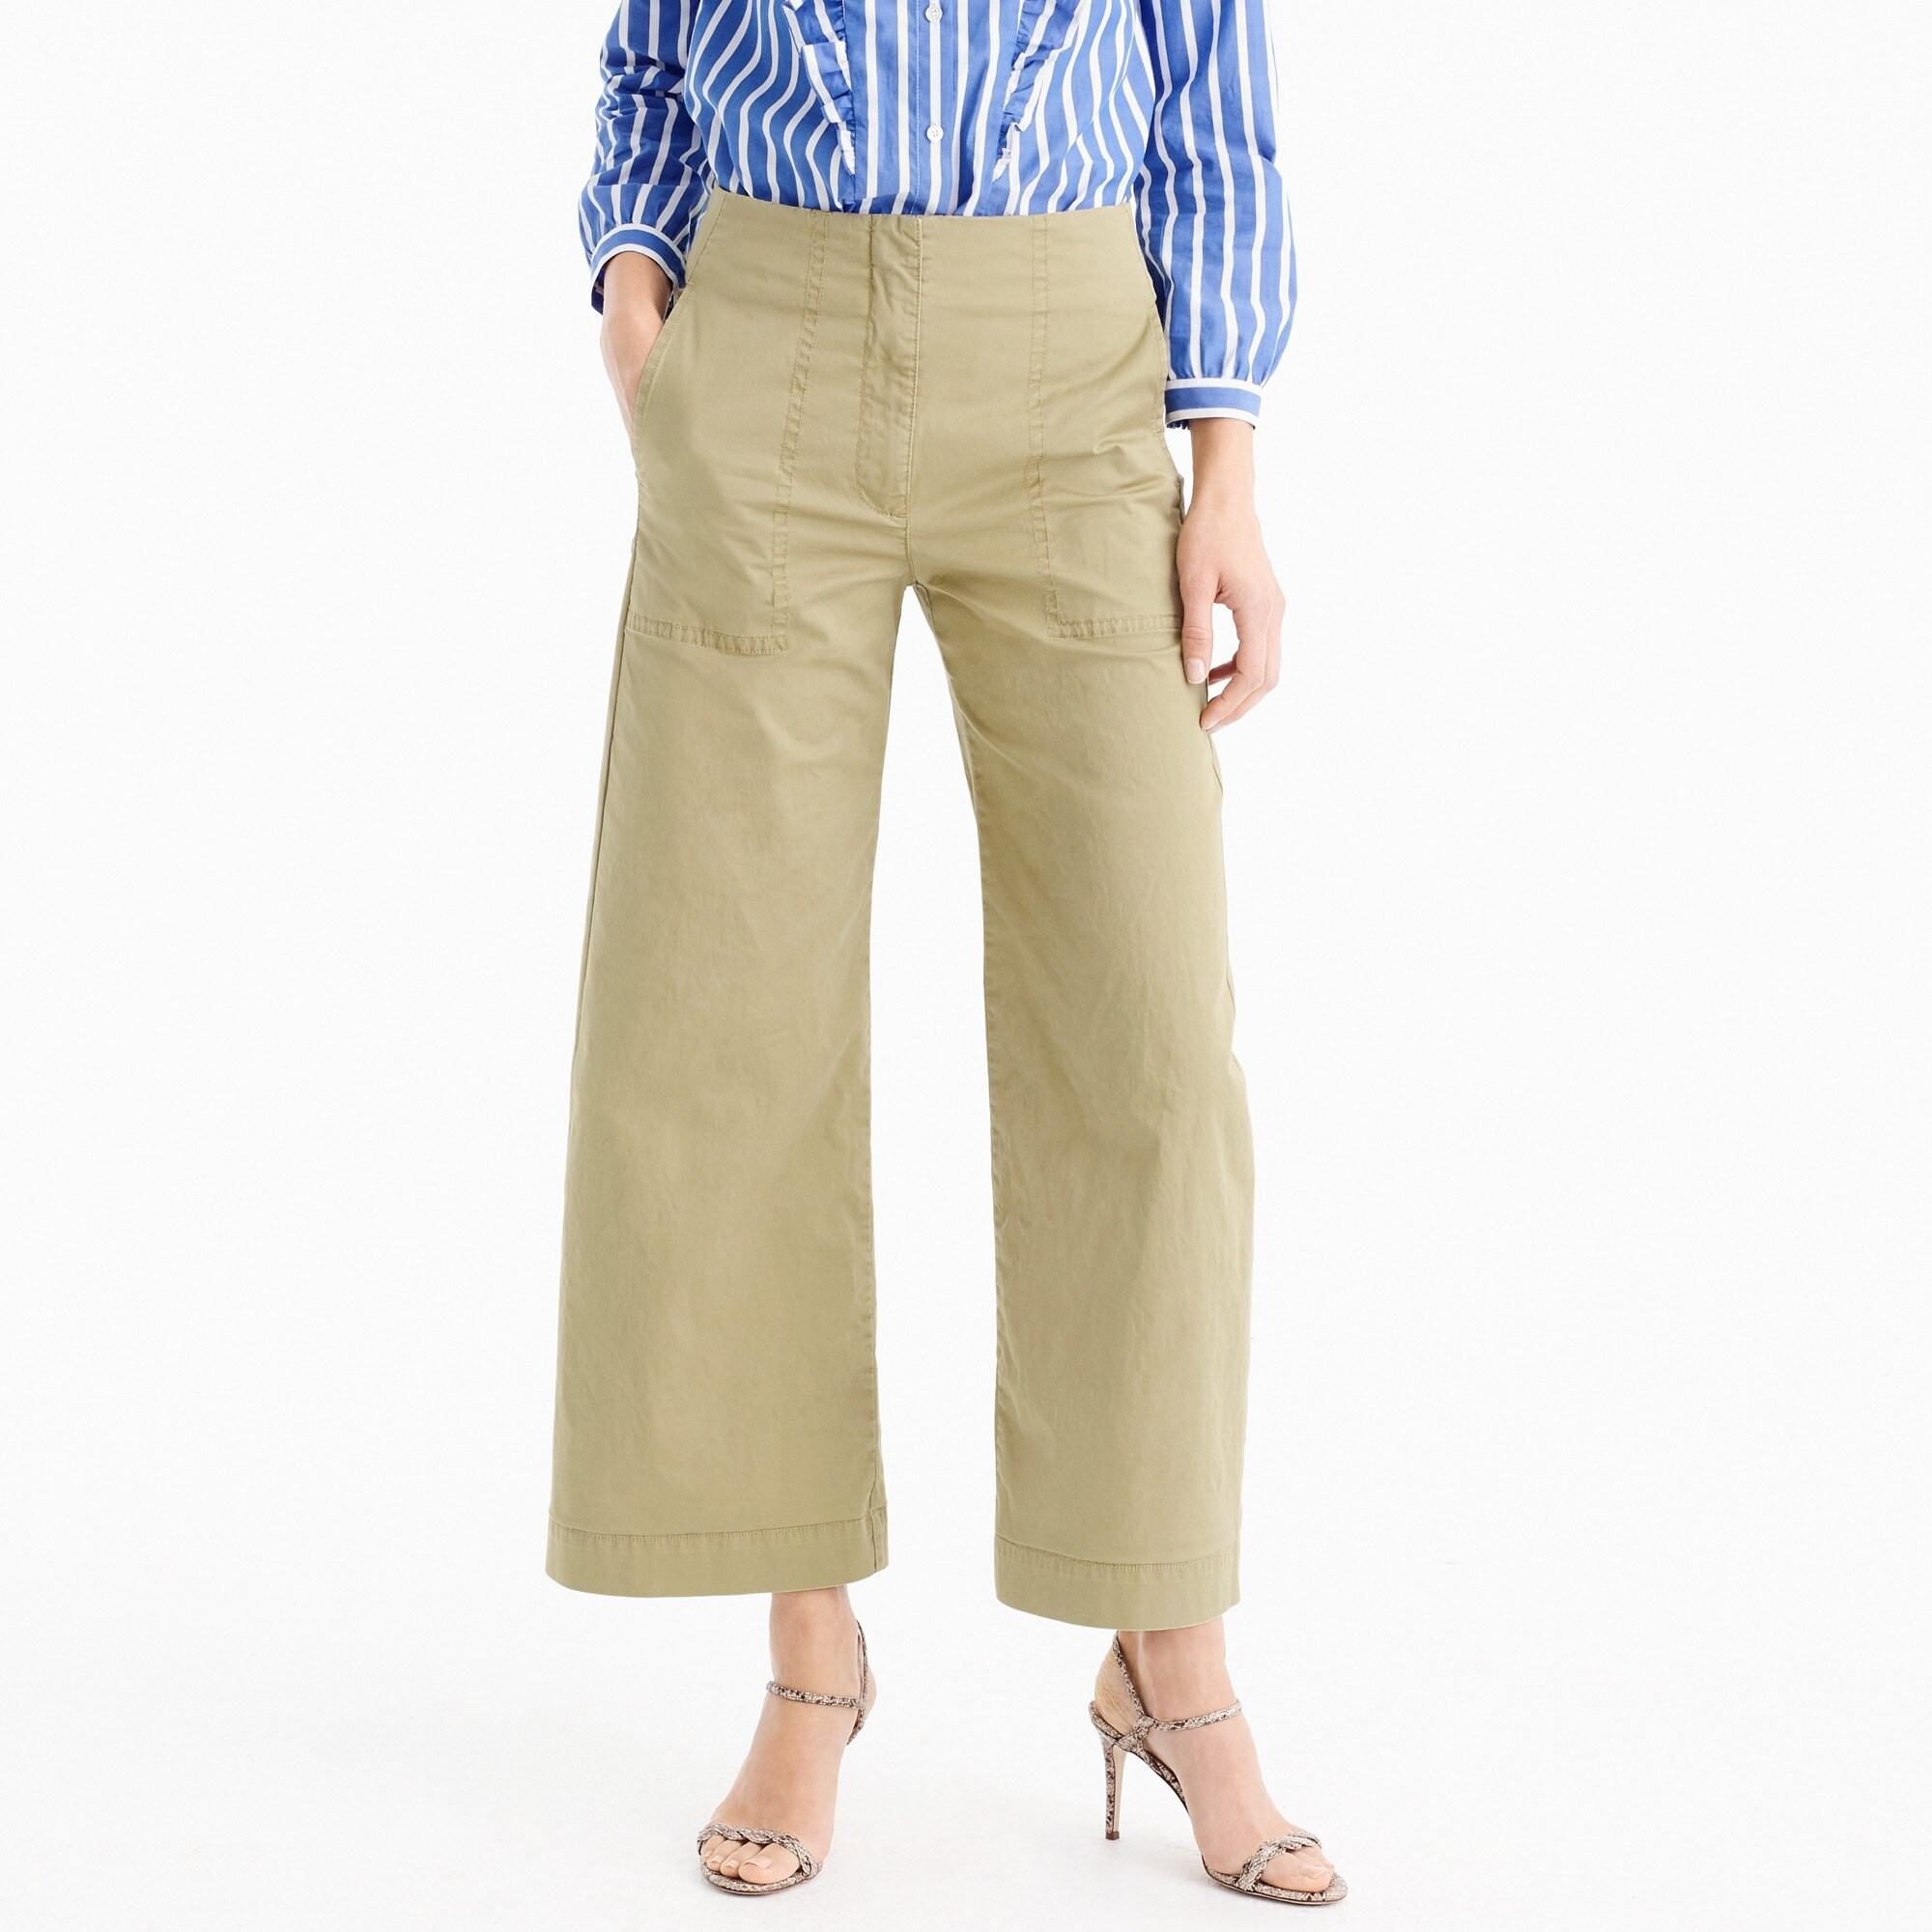 Cropped pant in stretch chino